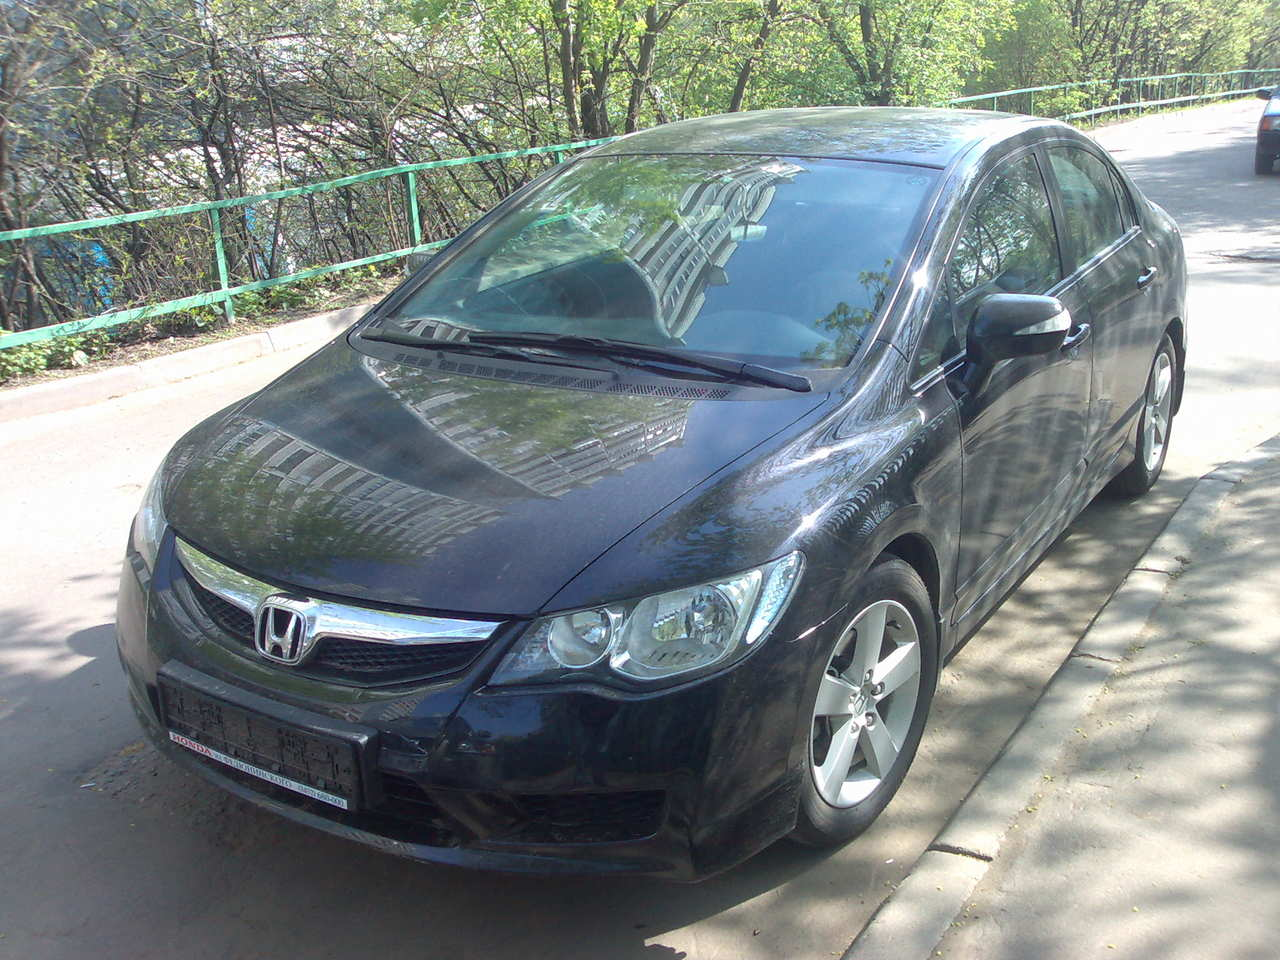 2009 honda civic pics 1 8 gasoline ff manual for sale. Black Bedroom Furniture Sets. Home Design Ideas